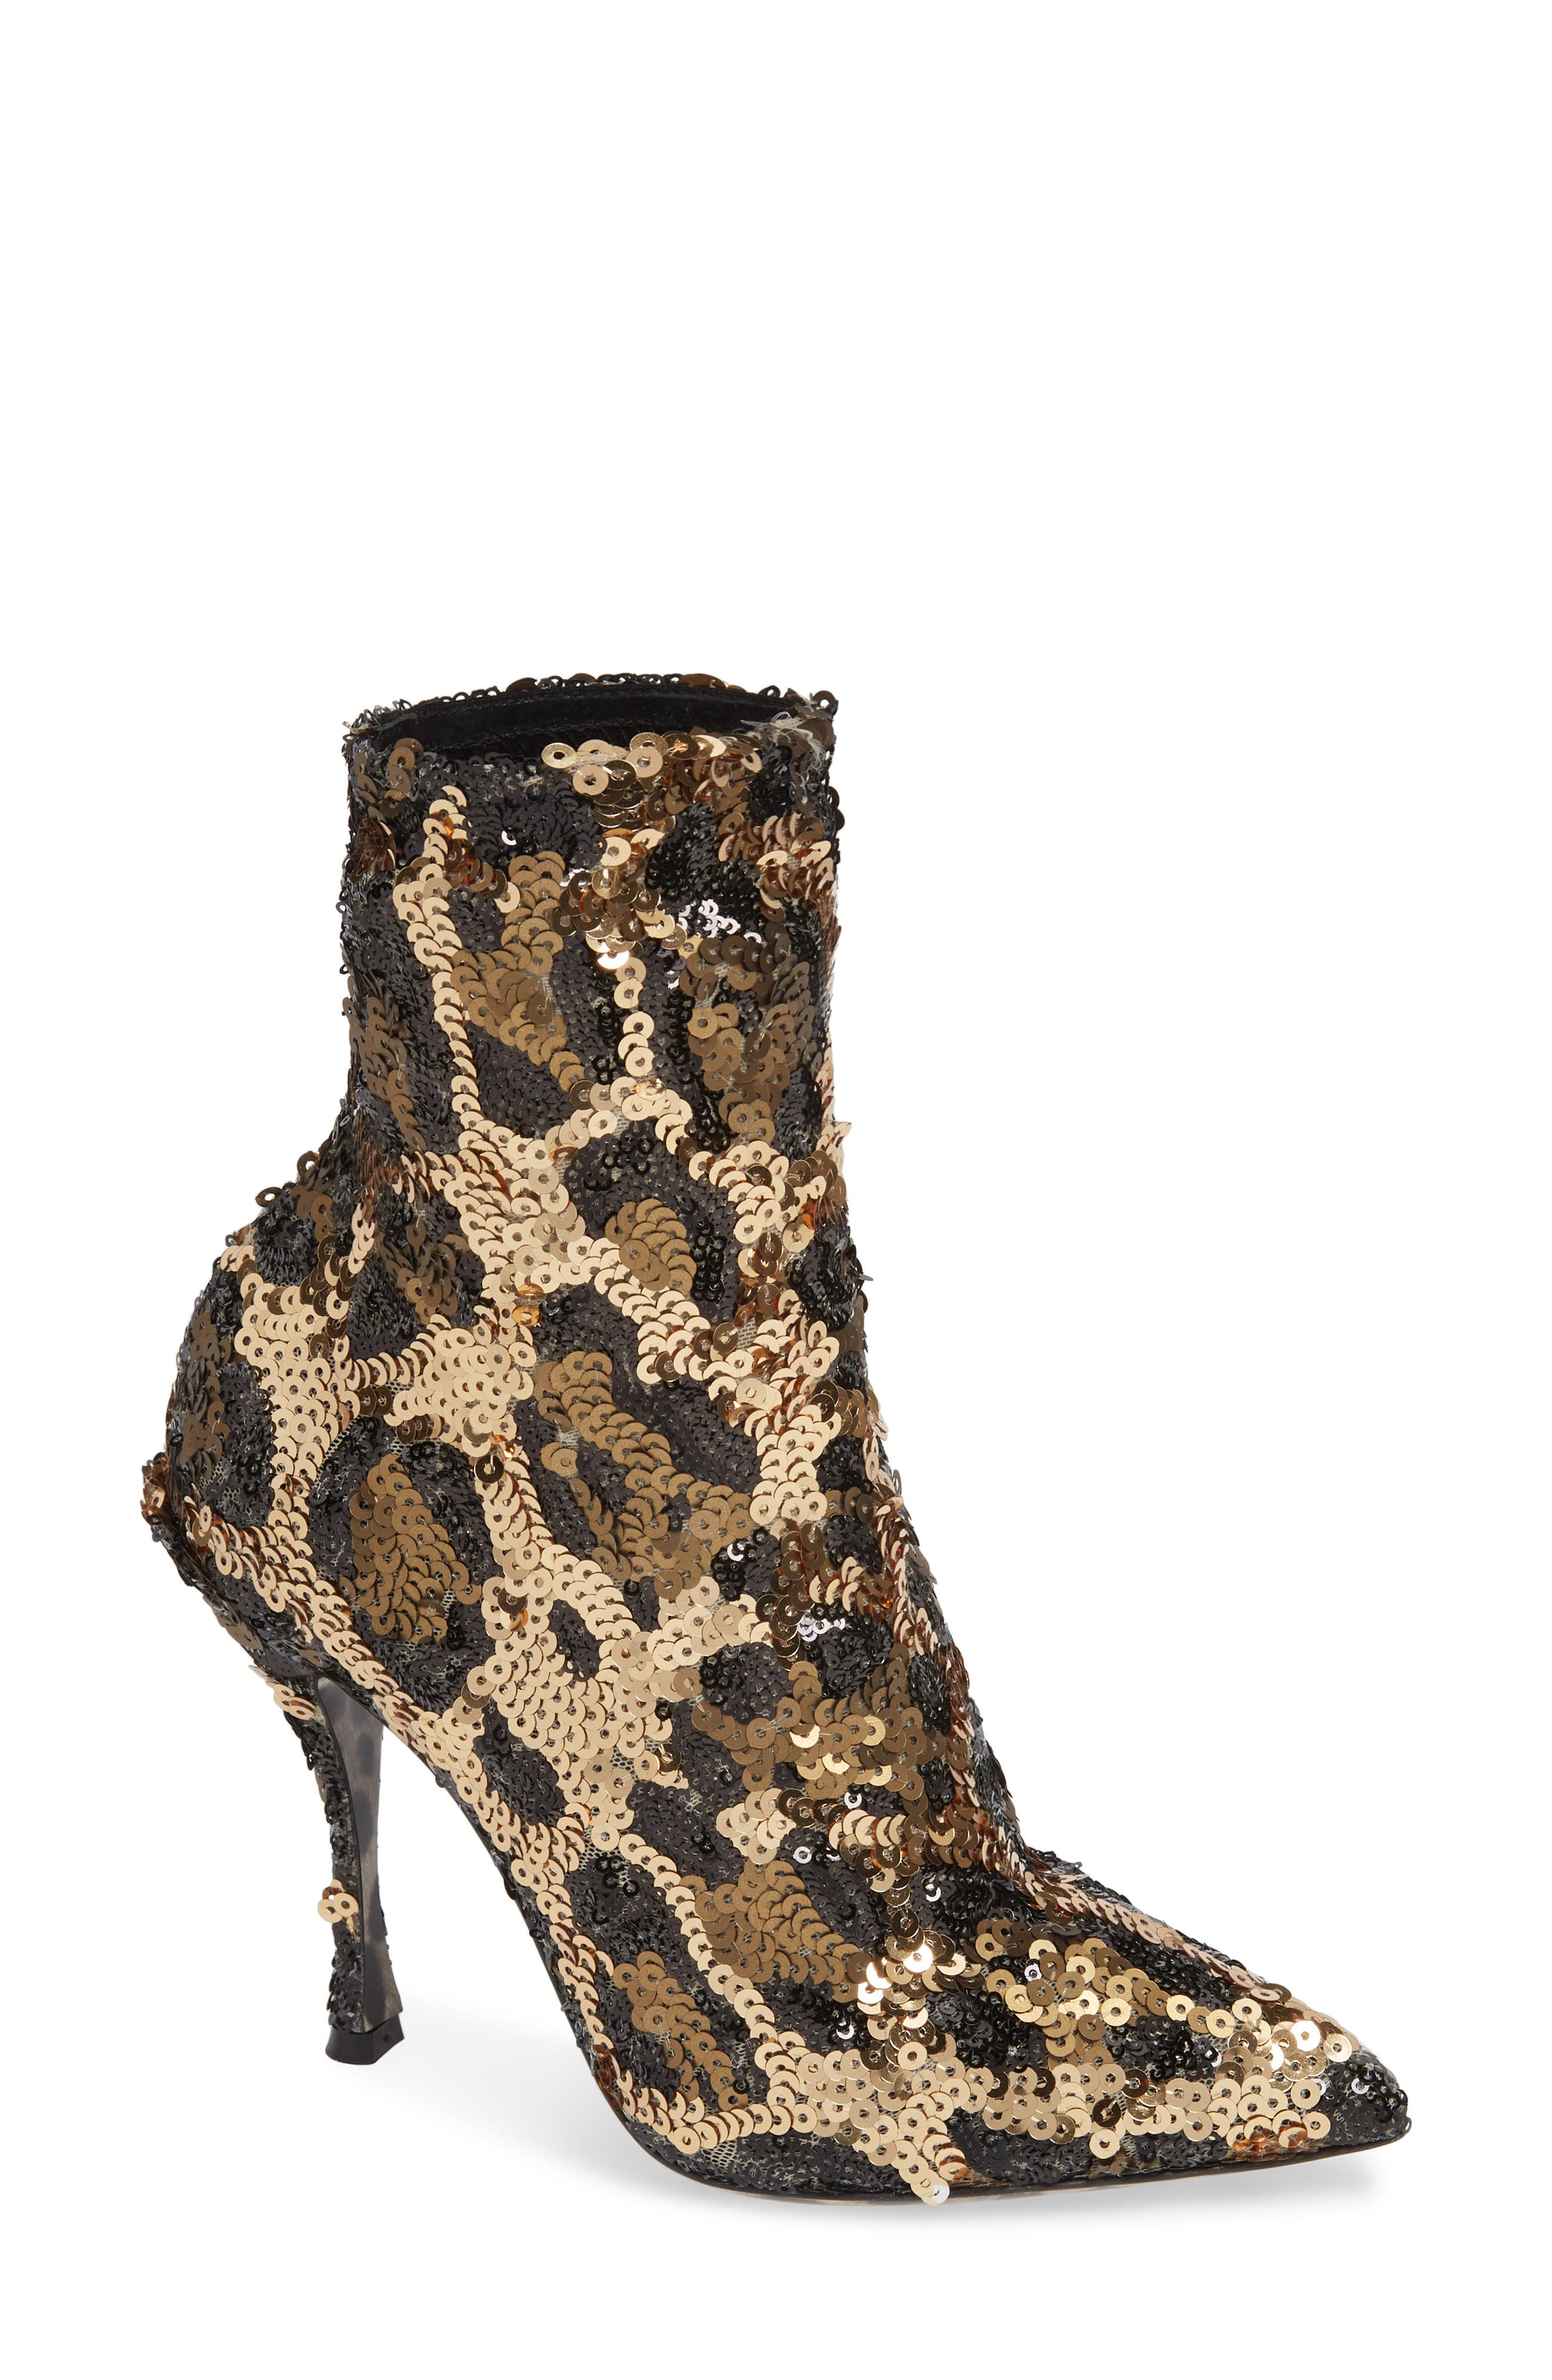 57b0670fe66861 Dolce and Gabbana Shoes for Women